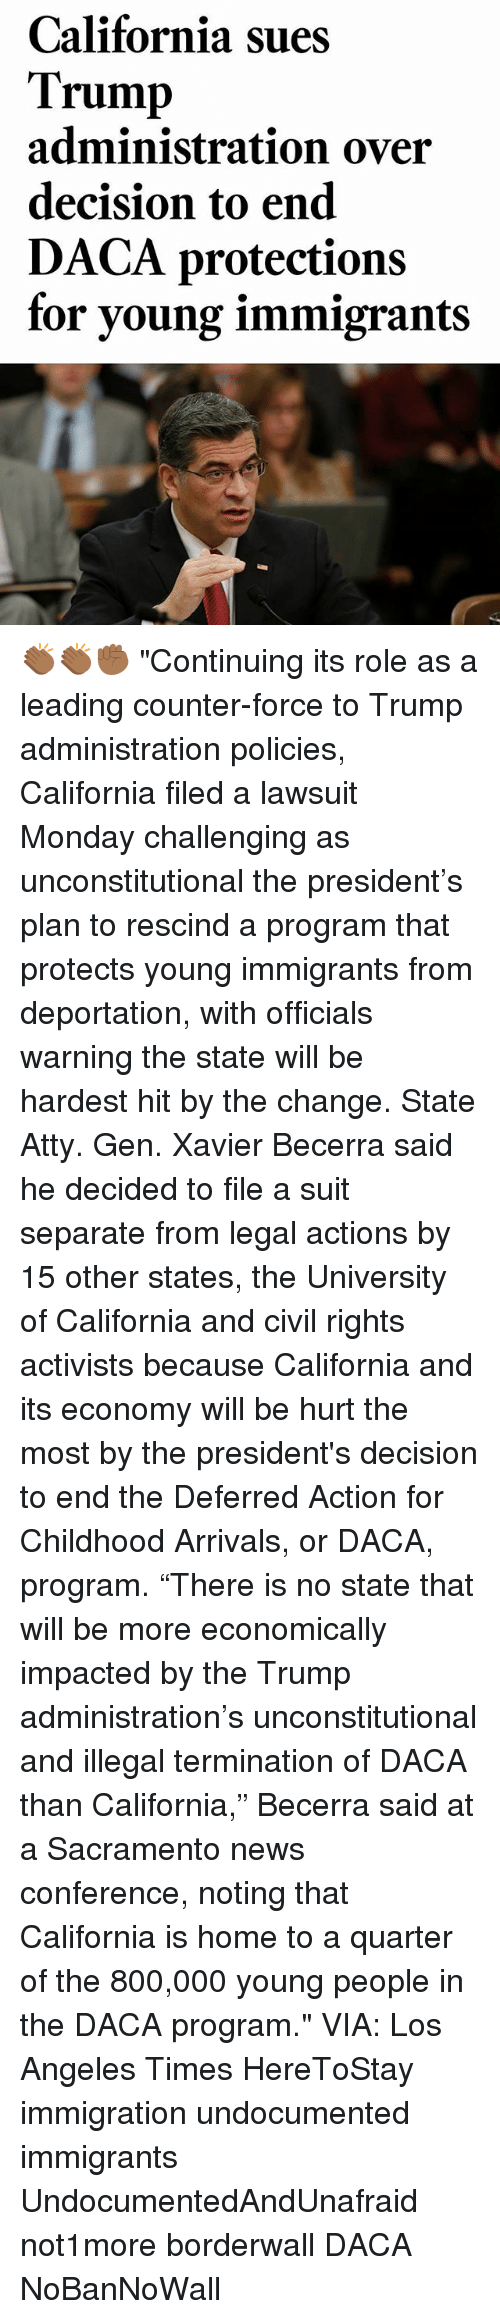 "Trumped: California sues  Trump  administration over  decision to end  DACA protections  for young immigrant:s 👏🏾👏🏾✊🏾 ""Continuing its role as a leading counter-force to Trump administration policies, California filed a lawsuit Monday challenging as unconstitutional the president's plan to rescind a program that protects young immigrants from deportation, with officials warning the state will be hardest hit by the change. State Atty. Gen. Xavier Becerra said he decided to file a suit separate from legal actions by 15 other states, the University of California and civil rights activists because California and its economy will be hurt the most by the president's decision to end the Deferred Action for Childhood Arrivals, or DACA, program. ""There is no state that will be more economically impacted by the Trump administration's unconstitutional and illegal termination of DACA than California,"" Becerra said at a Sacramento news conference, noting that California is home to a quarter of the 800,000 young people in the DACA program."" VIA: Los Angeles Times HereToStay immigration undocumented immigrants UndocumentedAndUnafraid not1more borderwall DACA NoBanNoWall"